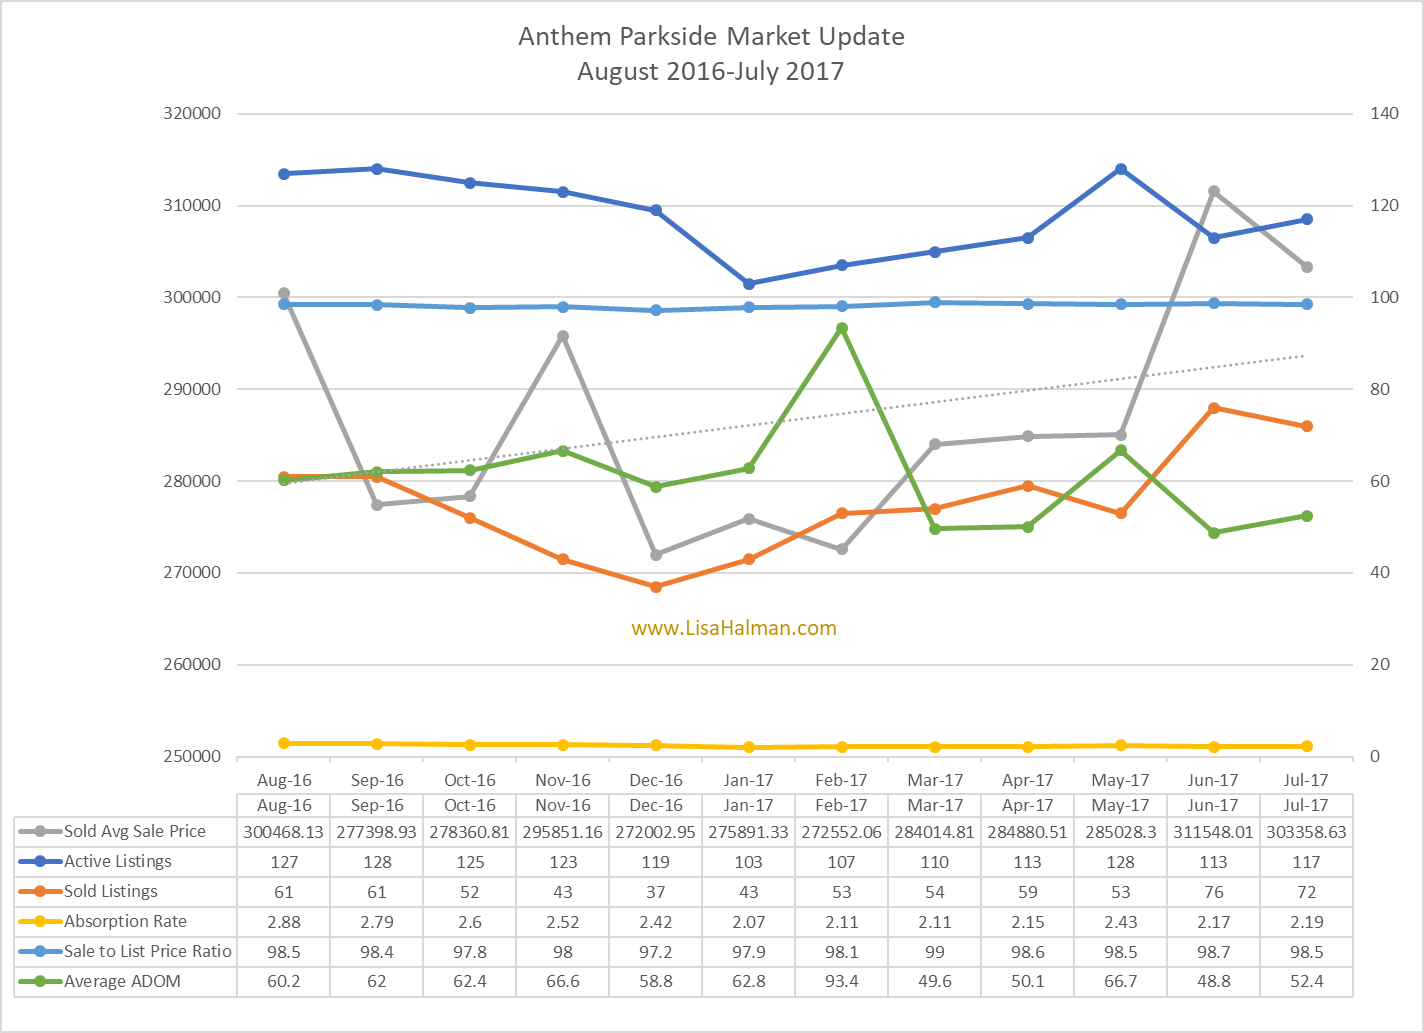 Anthem Parkside Market Update July 2017